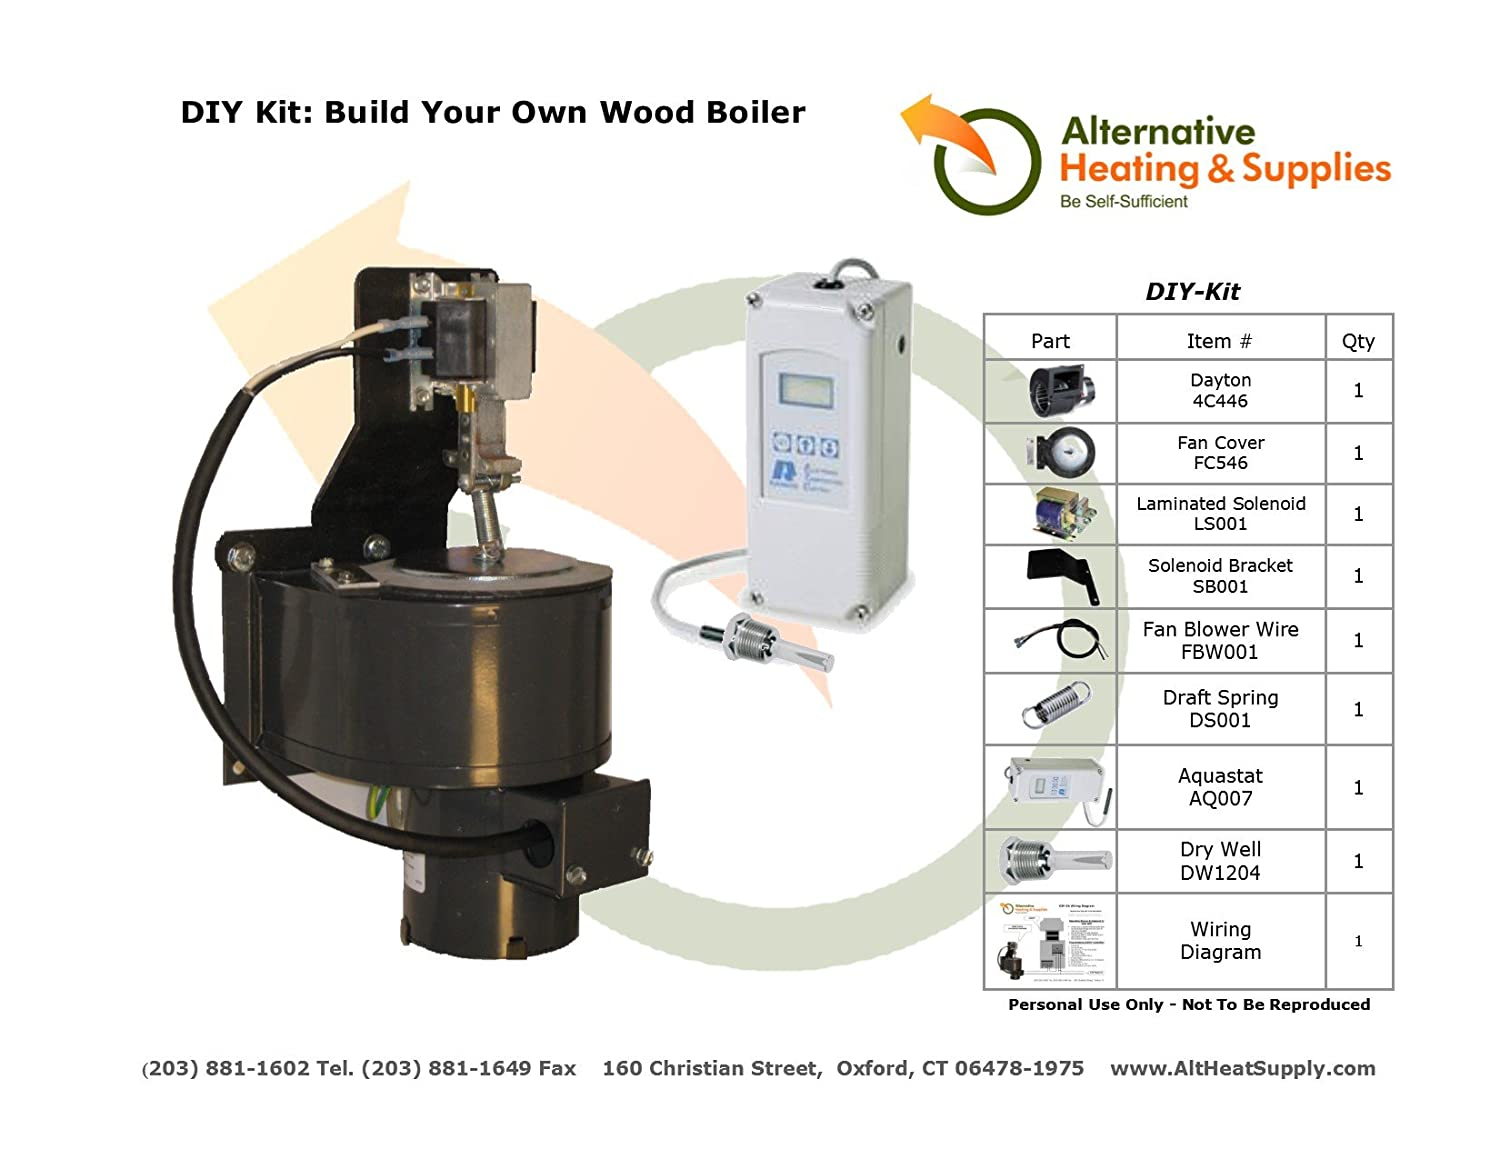 DIY Kit- Build Your Own Wood Boiler or Furnace - - Amazon.com